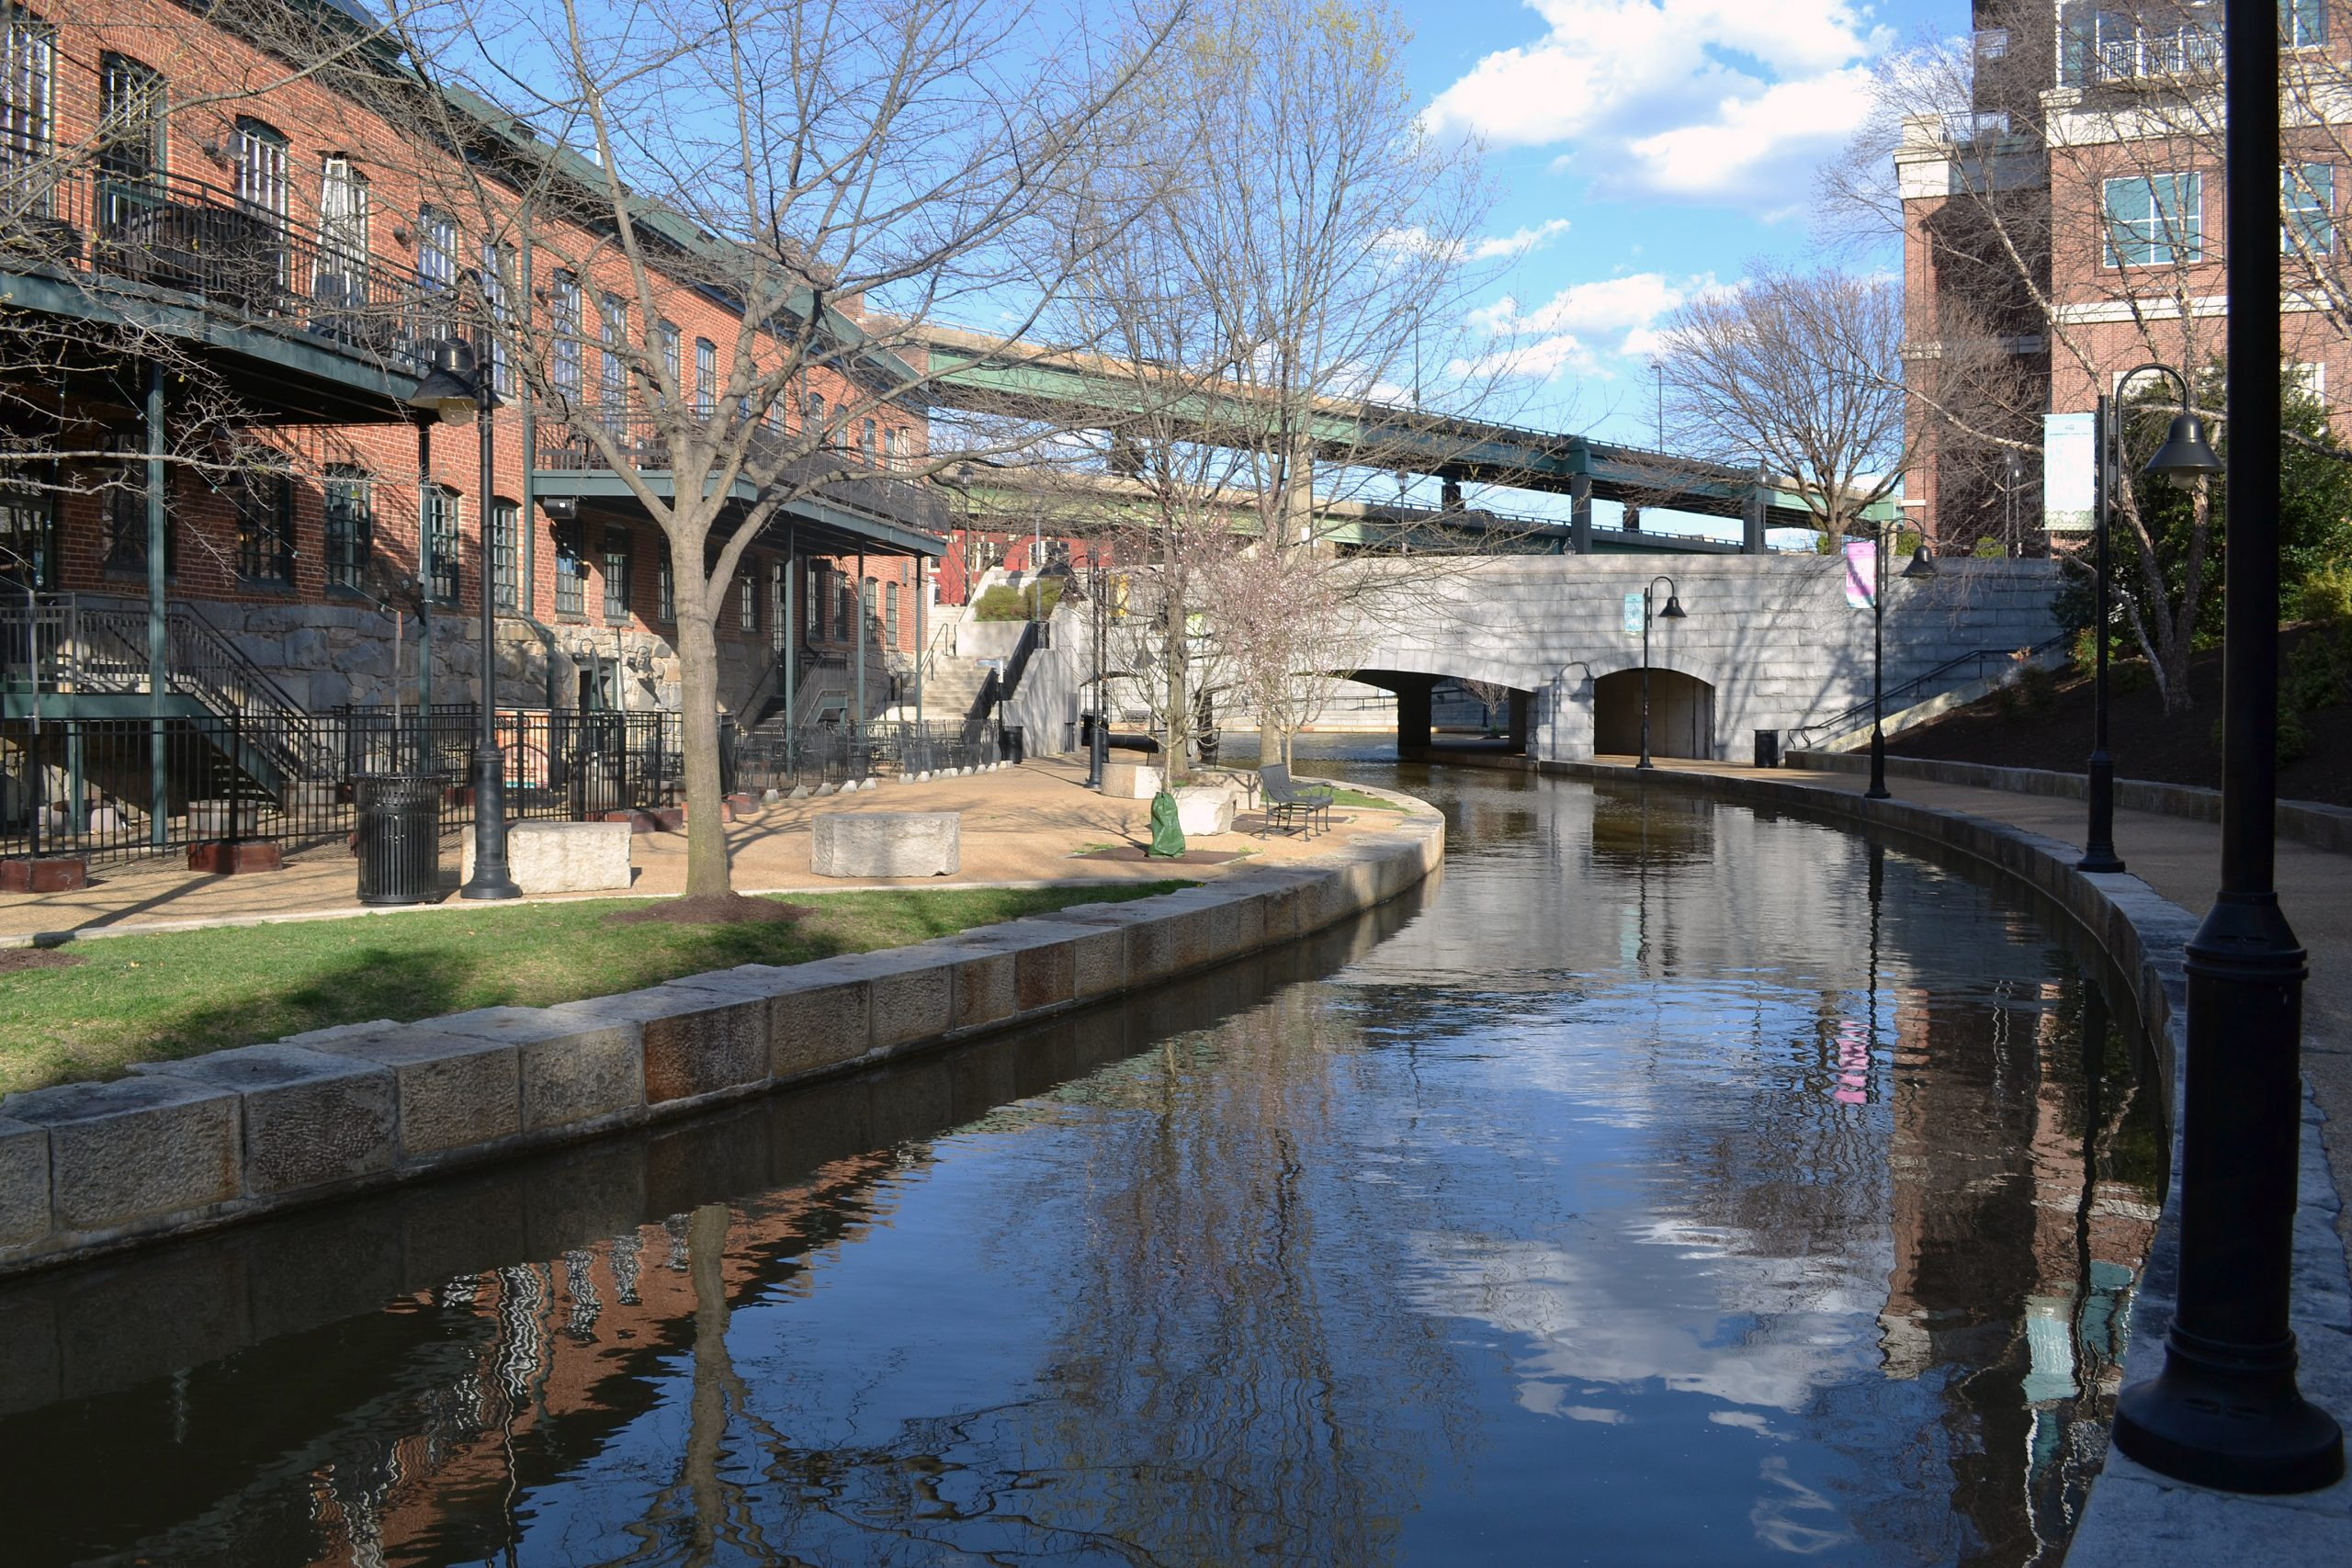 James River and Kanawha Canal Historic District